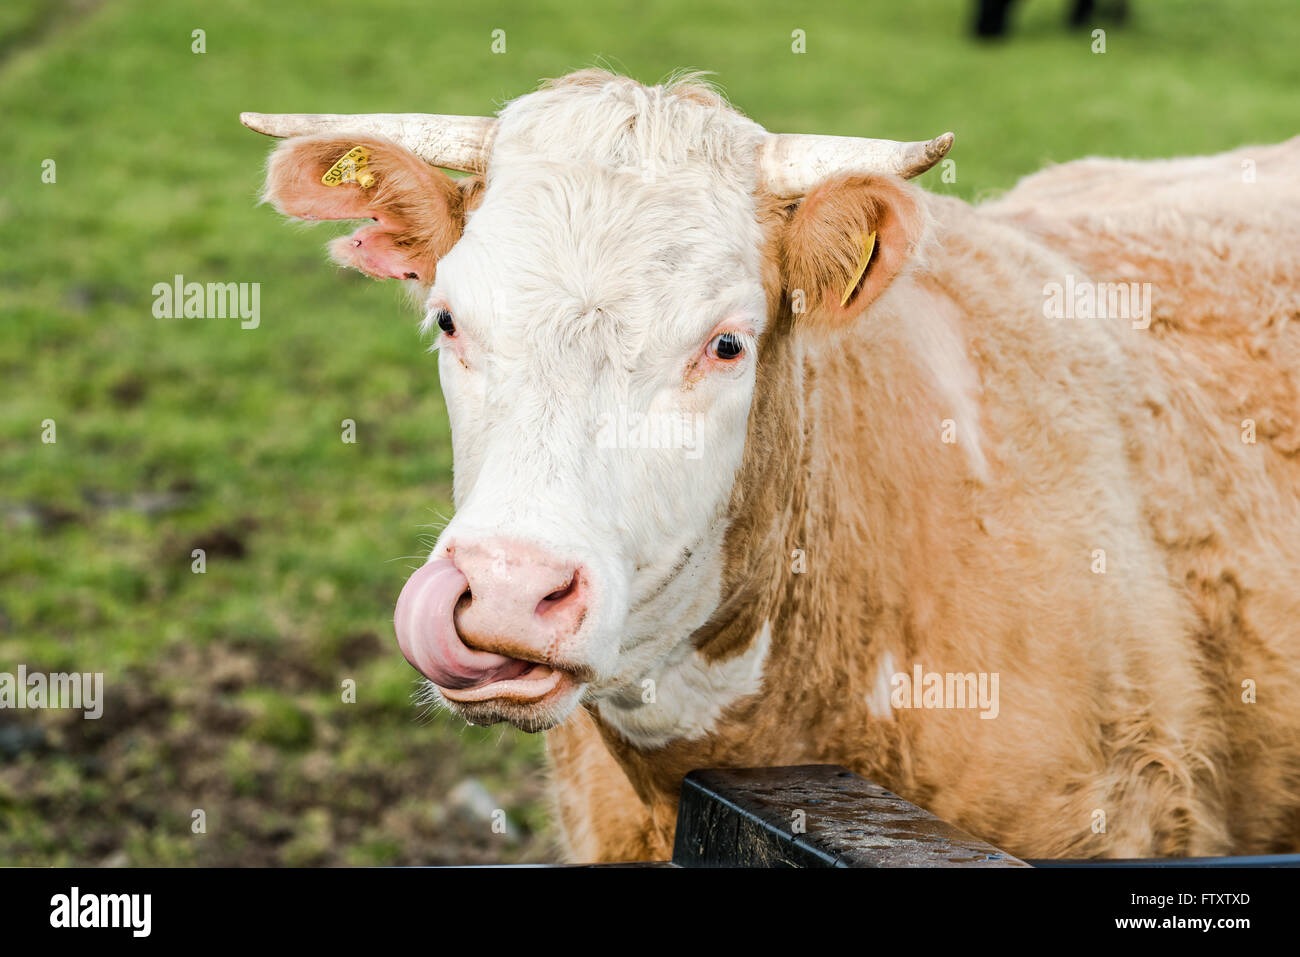 Funne cow face with tounge out, close head shoot - Stock Image